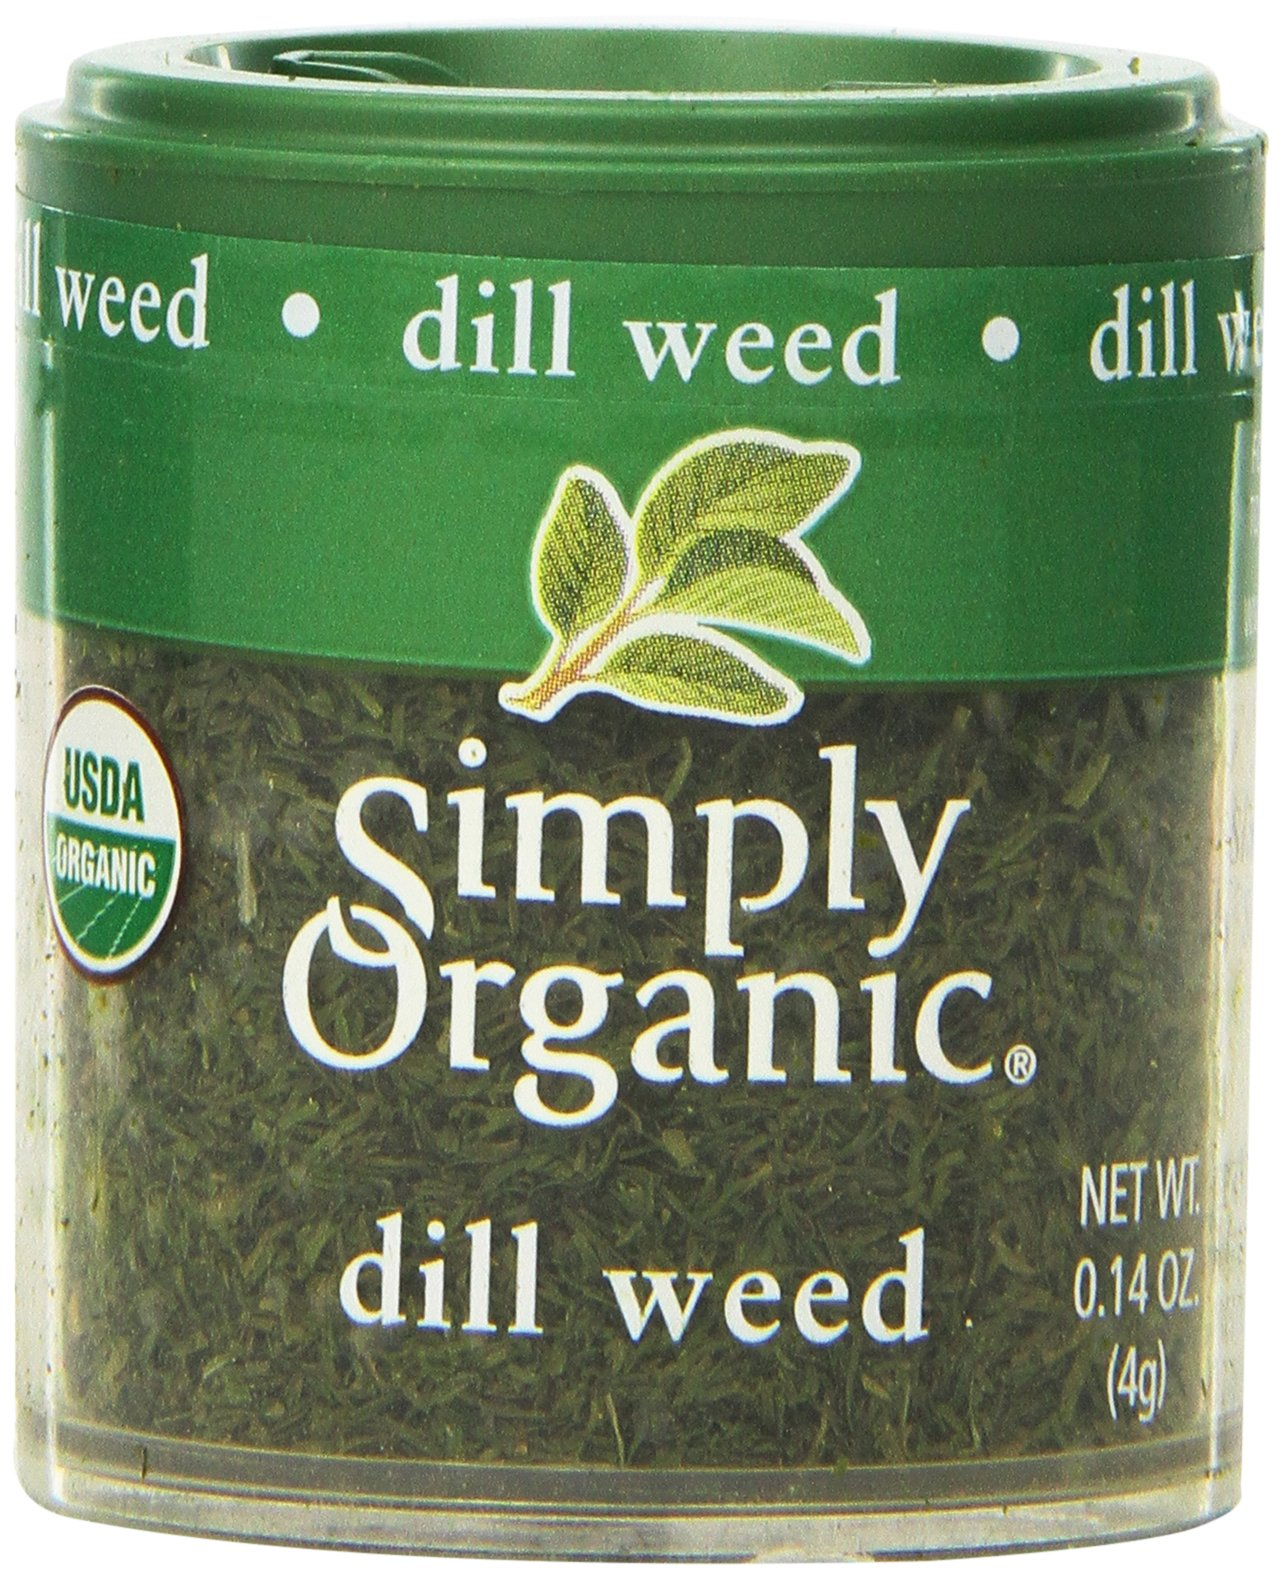 Simply Organic Dill Weed Cut & Sifted Certified Organic, 0.14-Ounce Containers (Pack of 6)